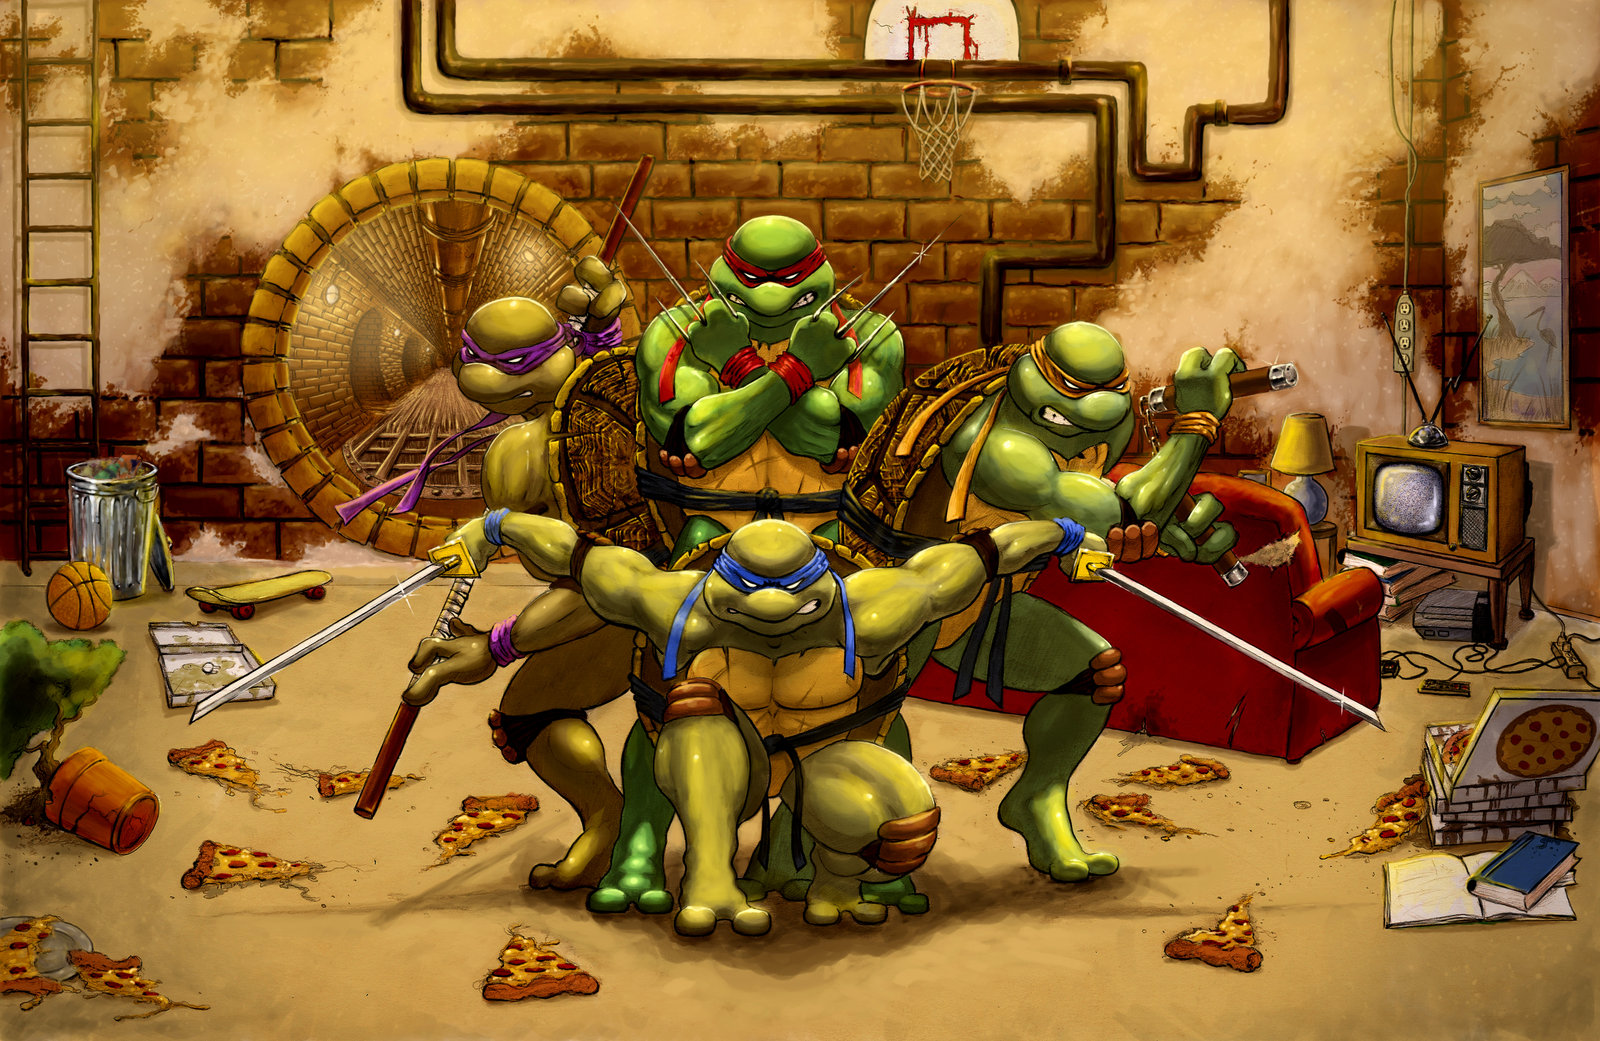 ninja turtles wallpaper (49 wallpapers) – adorable wallpapers